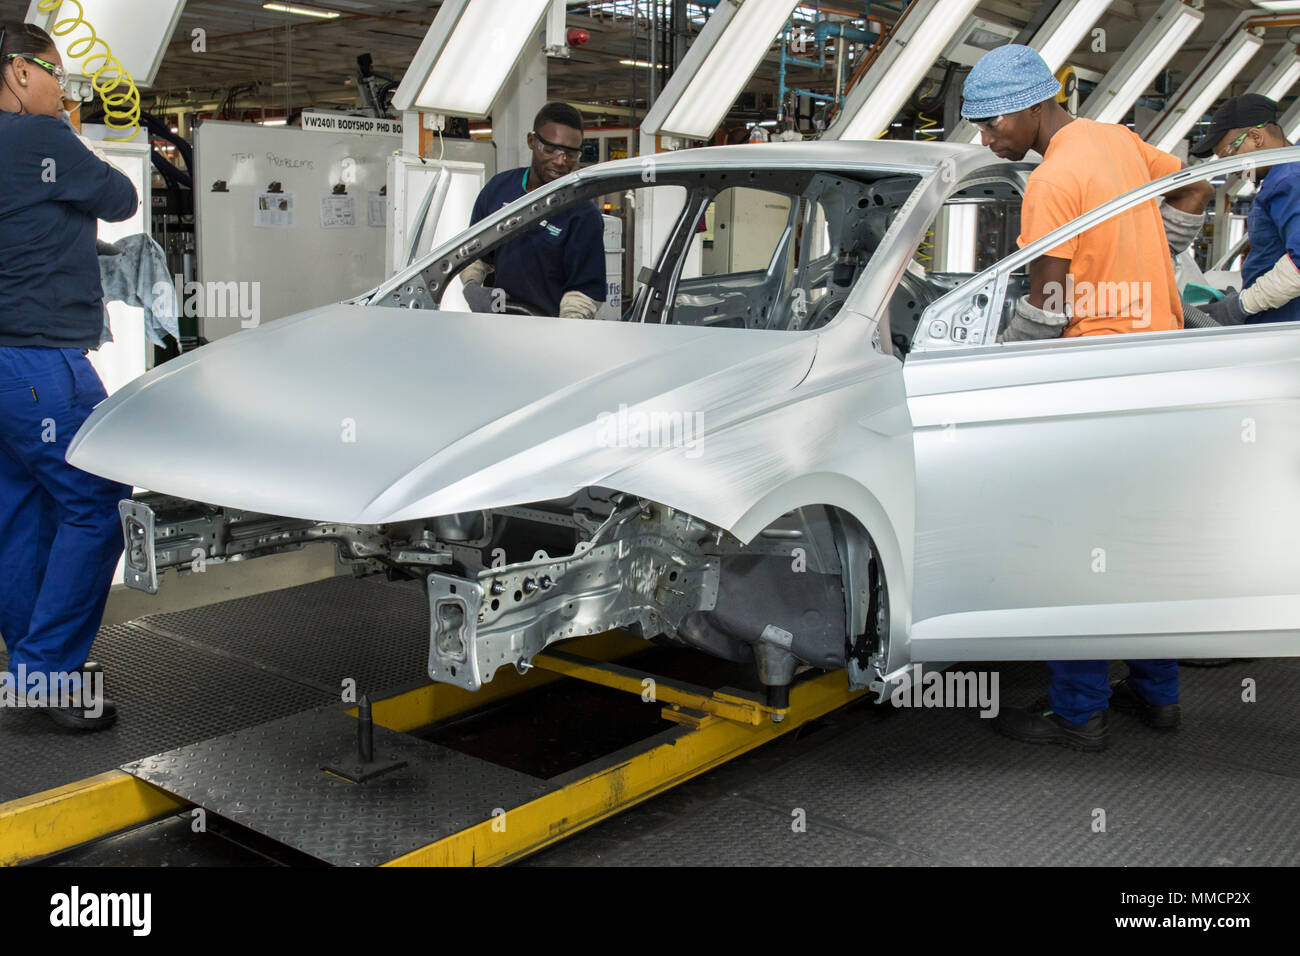 Car Manufacturers In South Africa 10 May 2018 South Africa Uitenhage Employees Work On